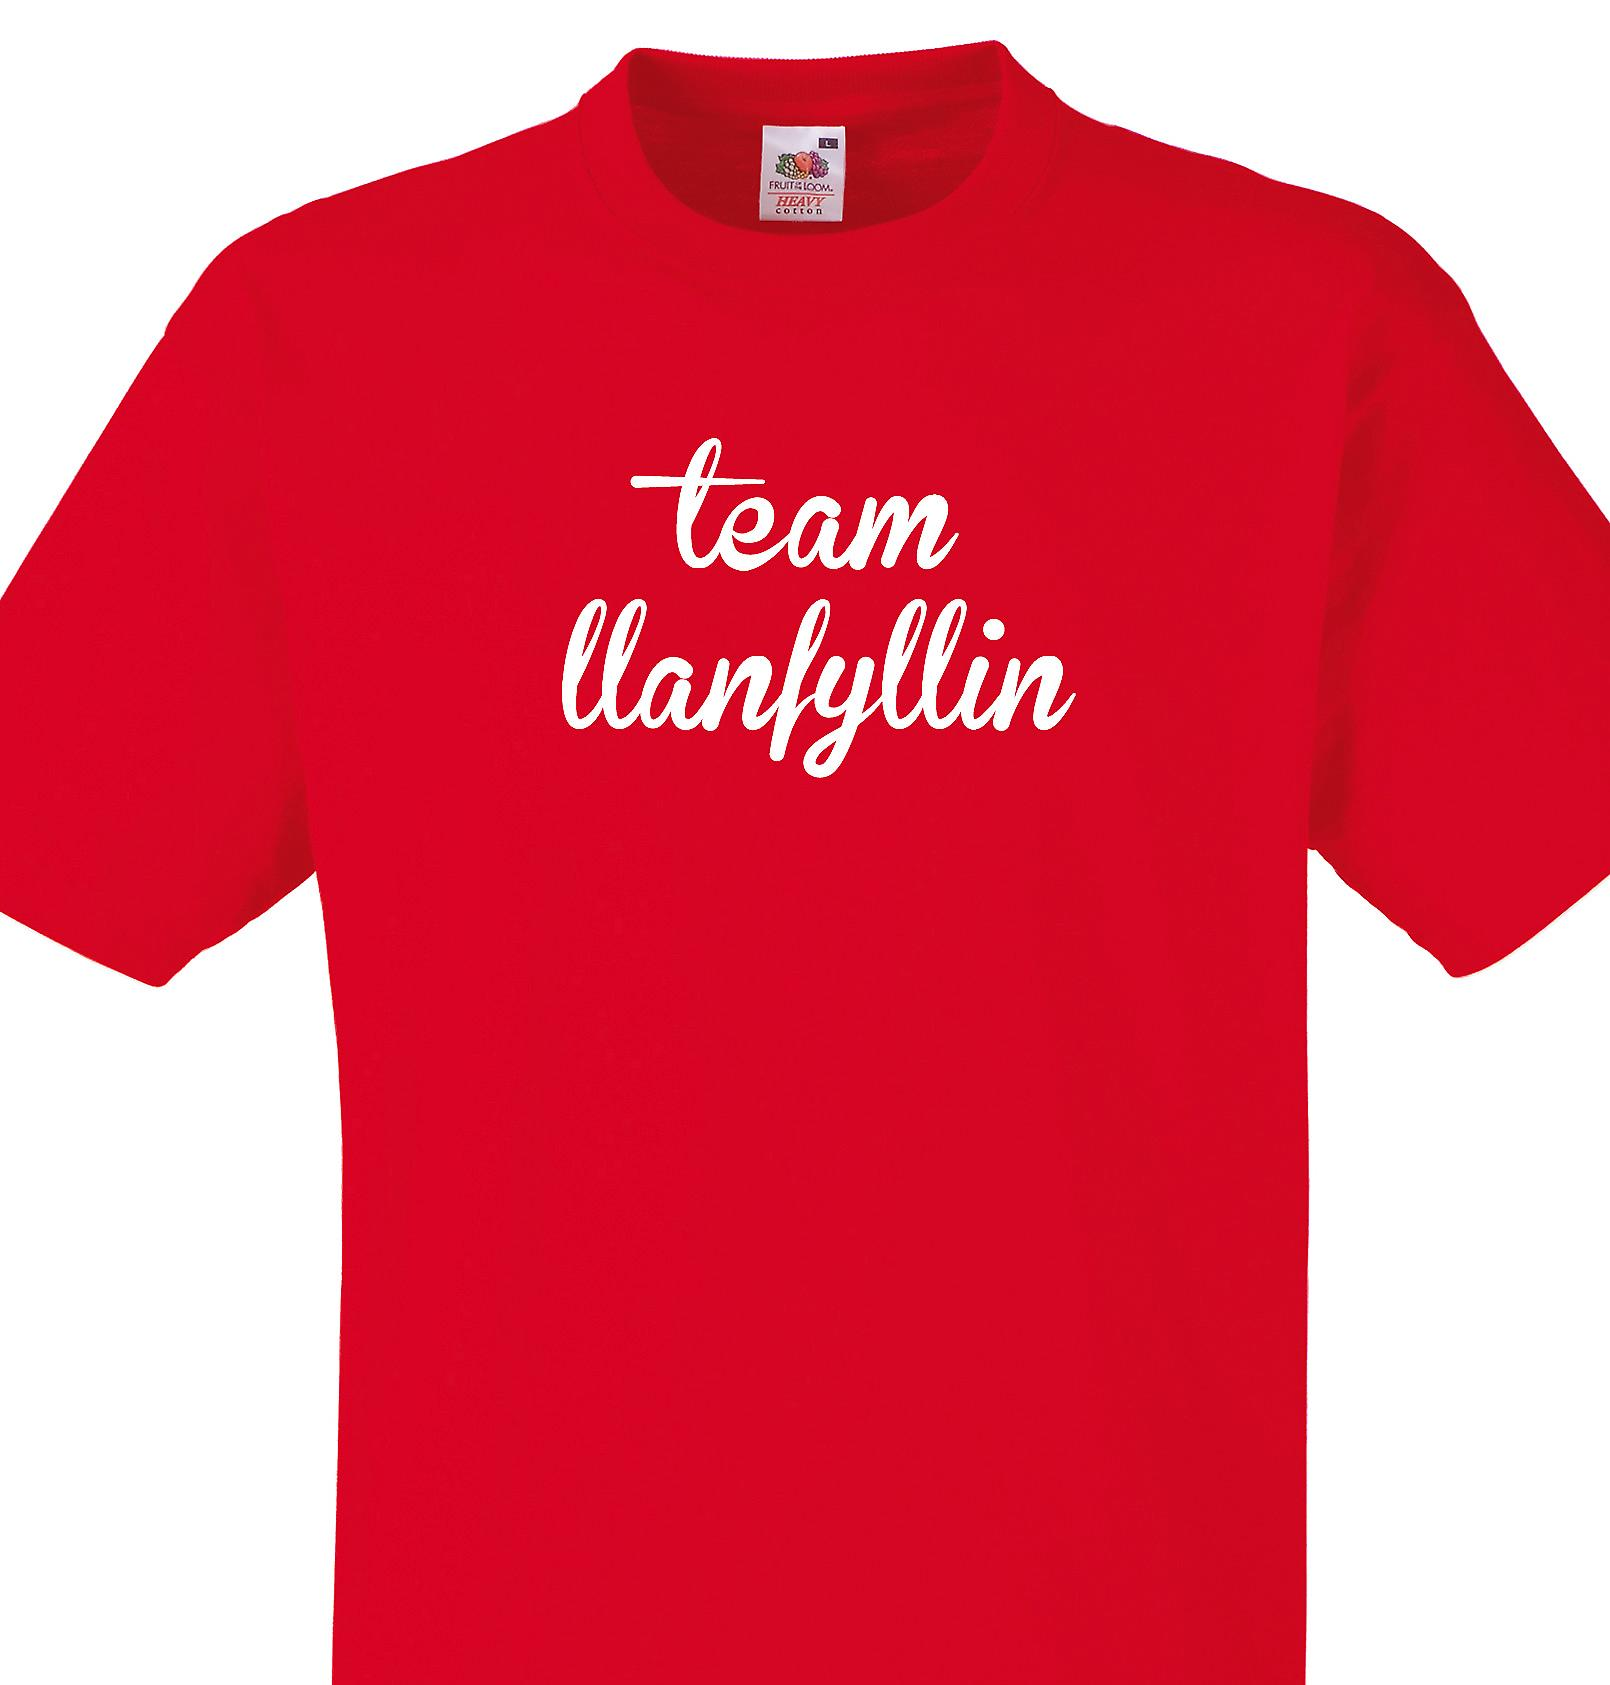 Team Llanfyllin Red T shirt